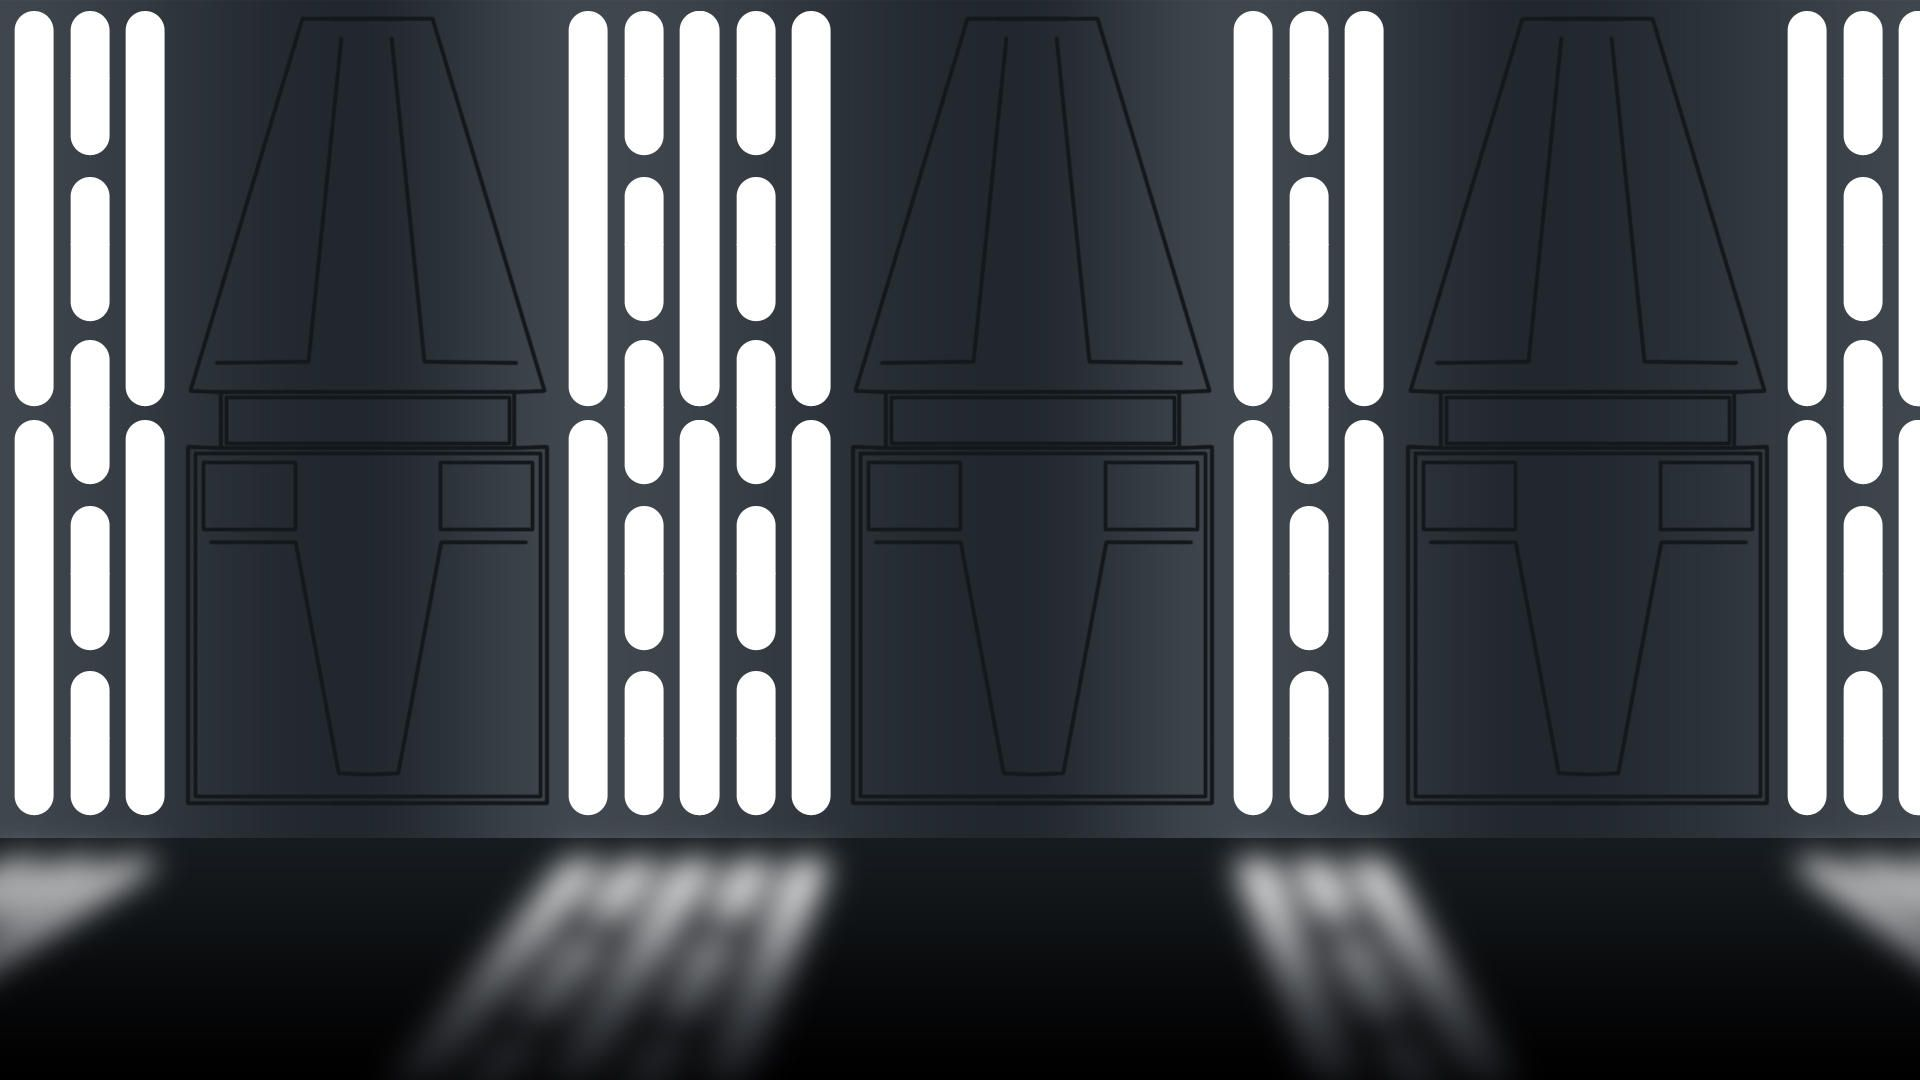 Star Wars Imperial Wall Panel By Balsavor Star Wars Bedroom Star Wars Room Star Wars Man Cave